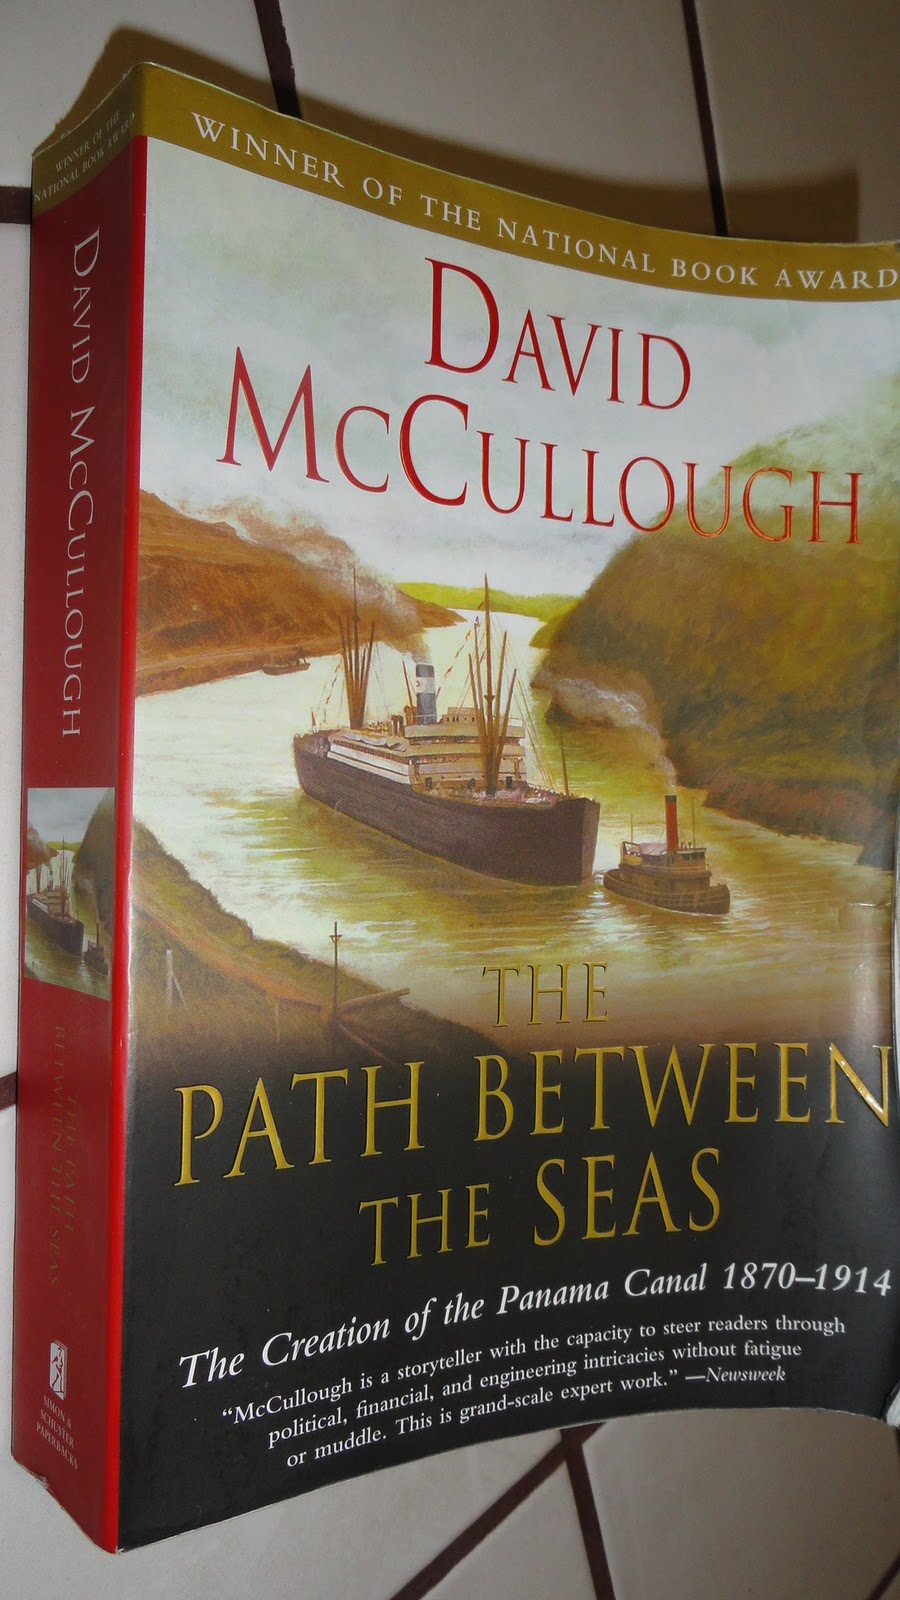 McCullough made the seemingly boring story of the creation of Panama Canal  a fascinating one. So many pivotal people involved came alive in his book.